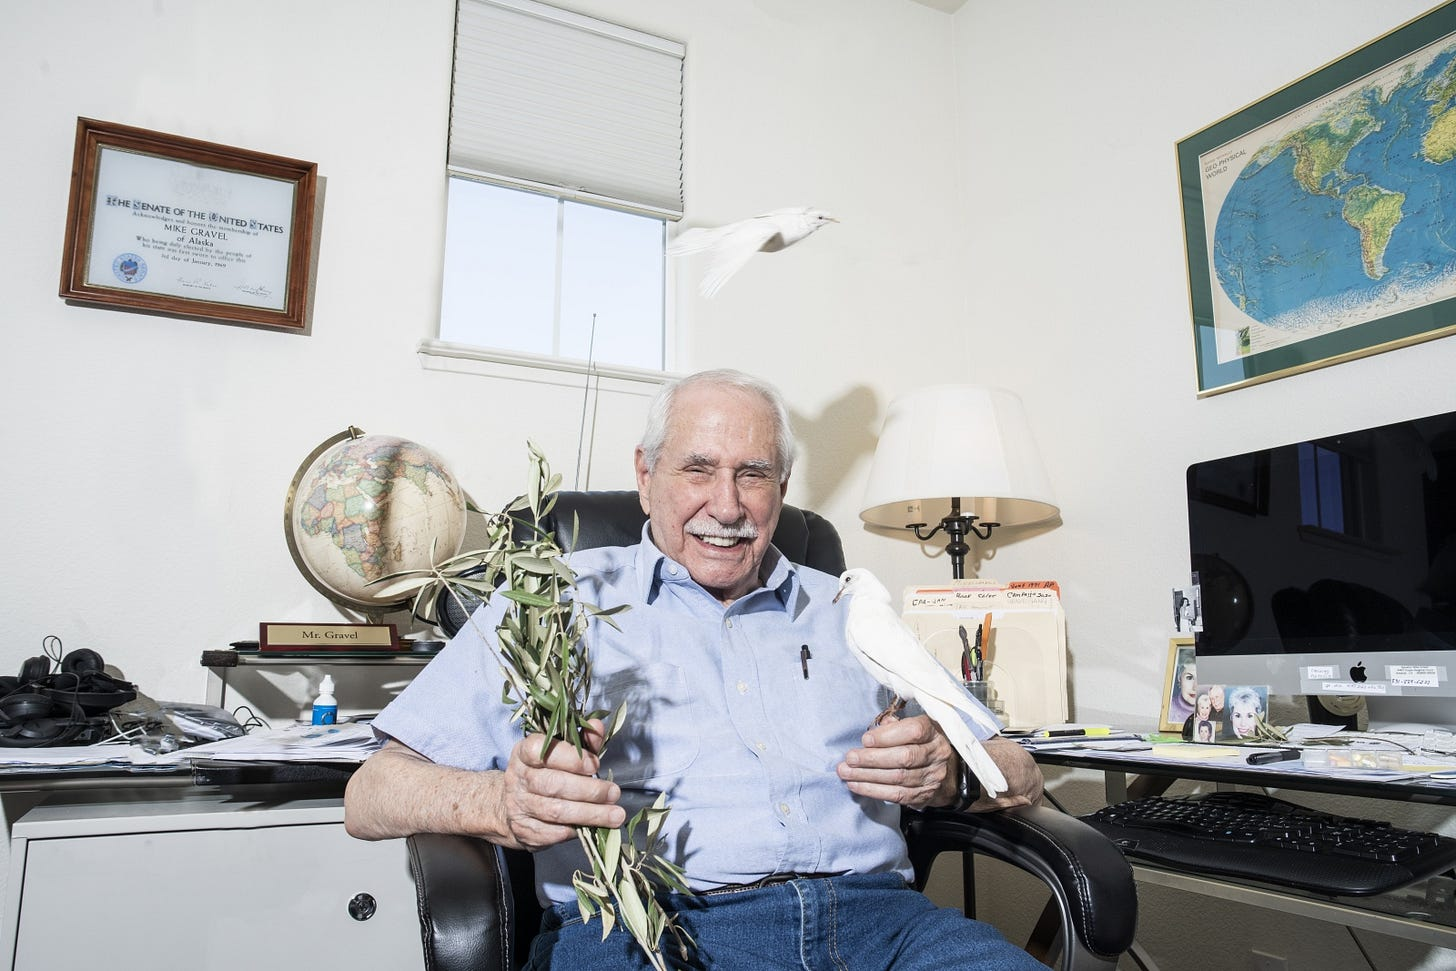 Mike Gravel 2020 Presidential Campaign Photoshoot by Eric ...